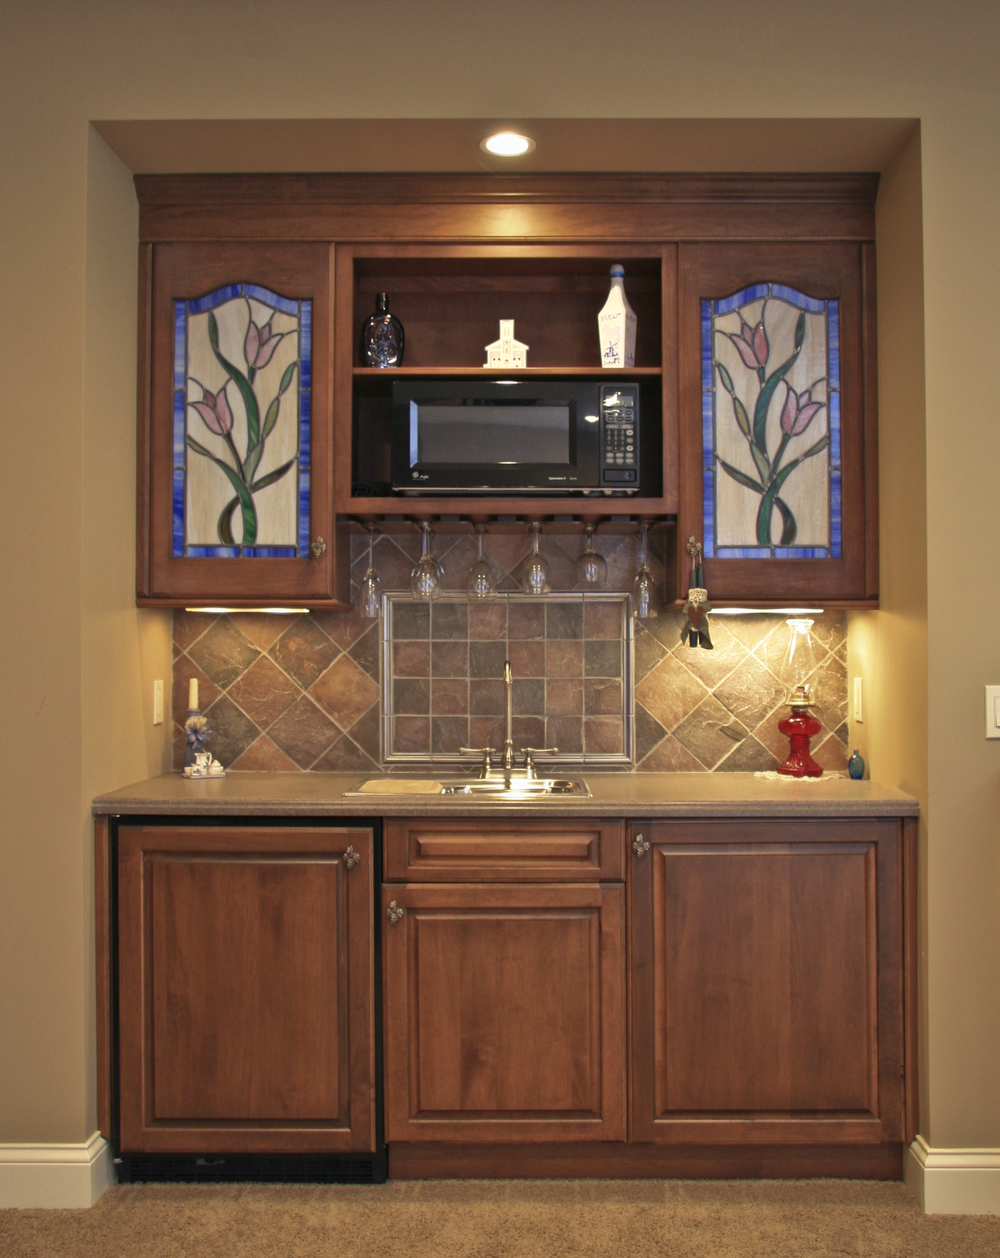 LL_Wet_Bar_IMG_0072.jpg